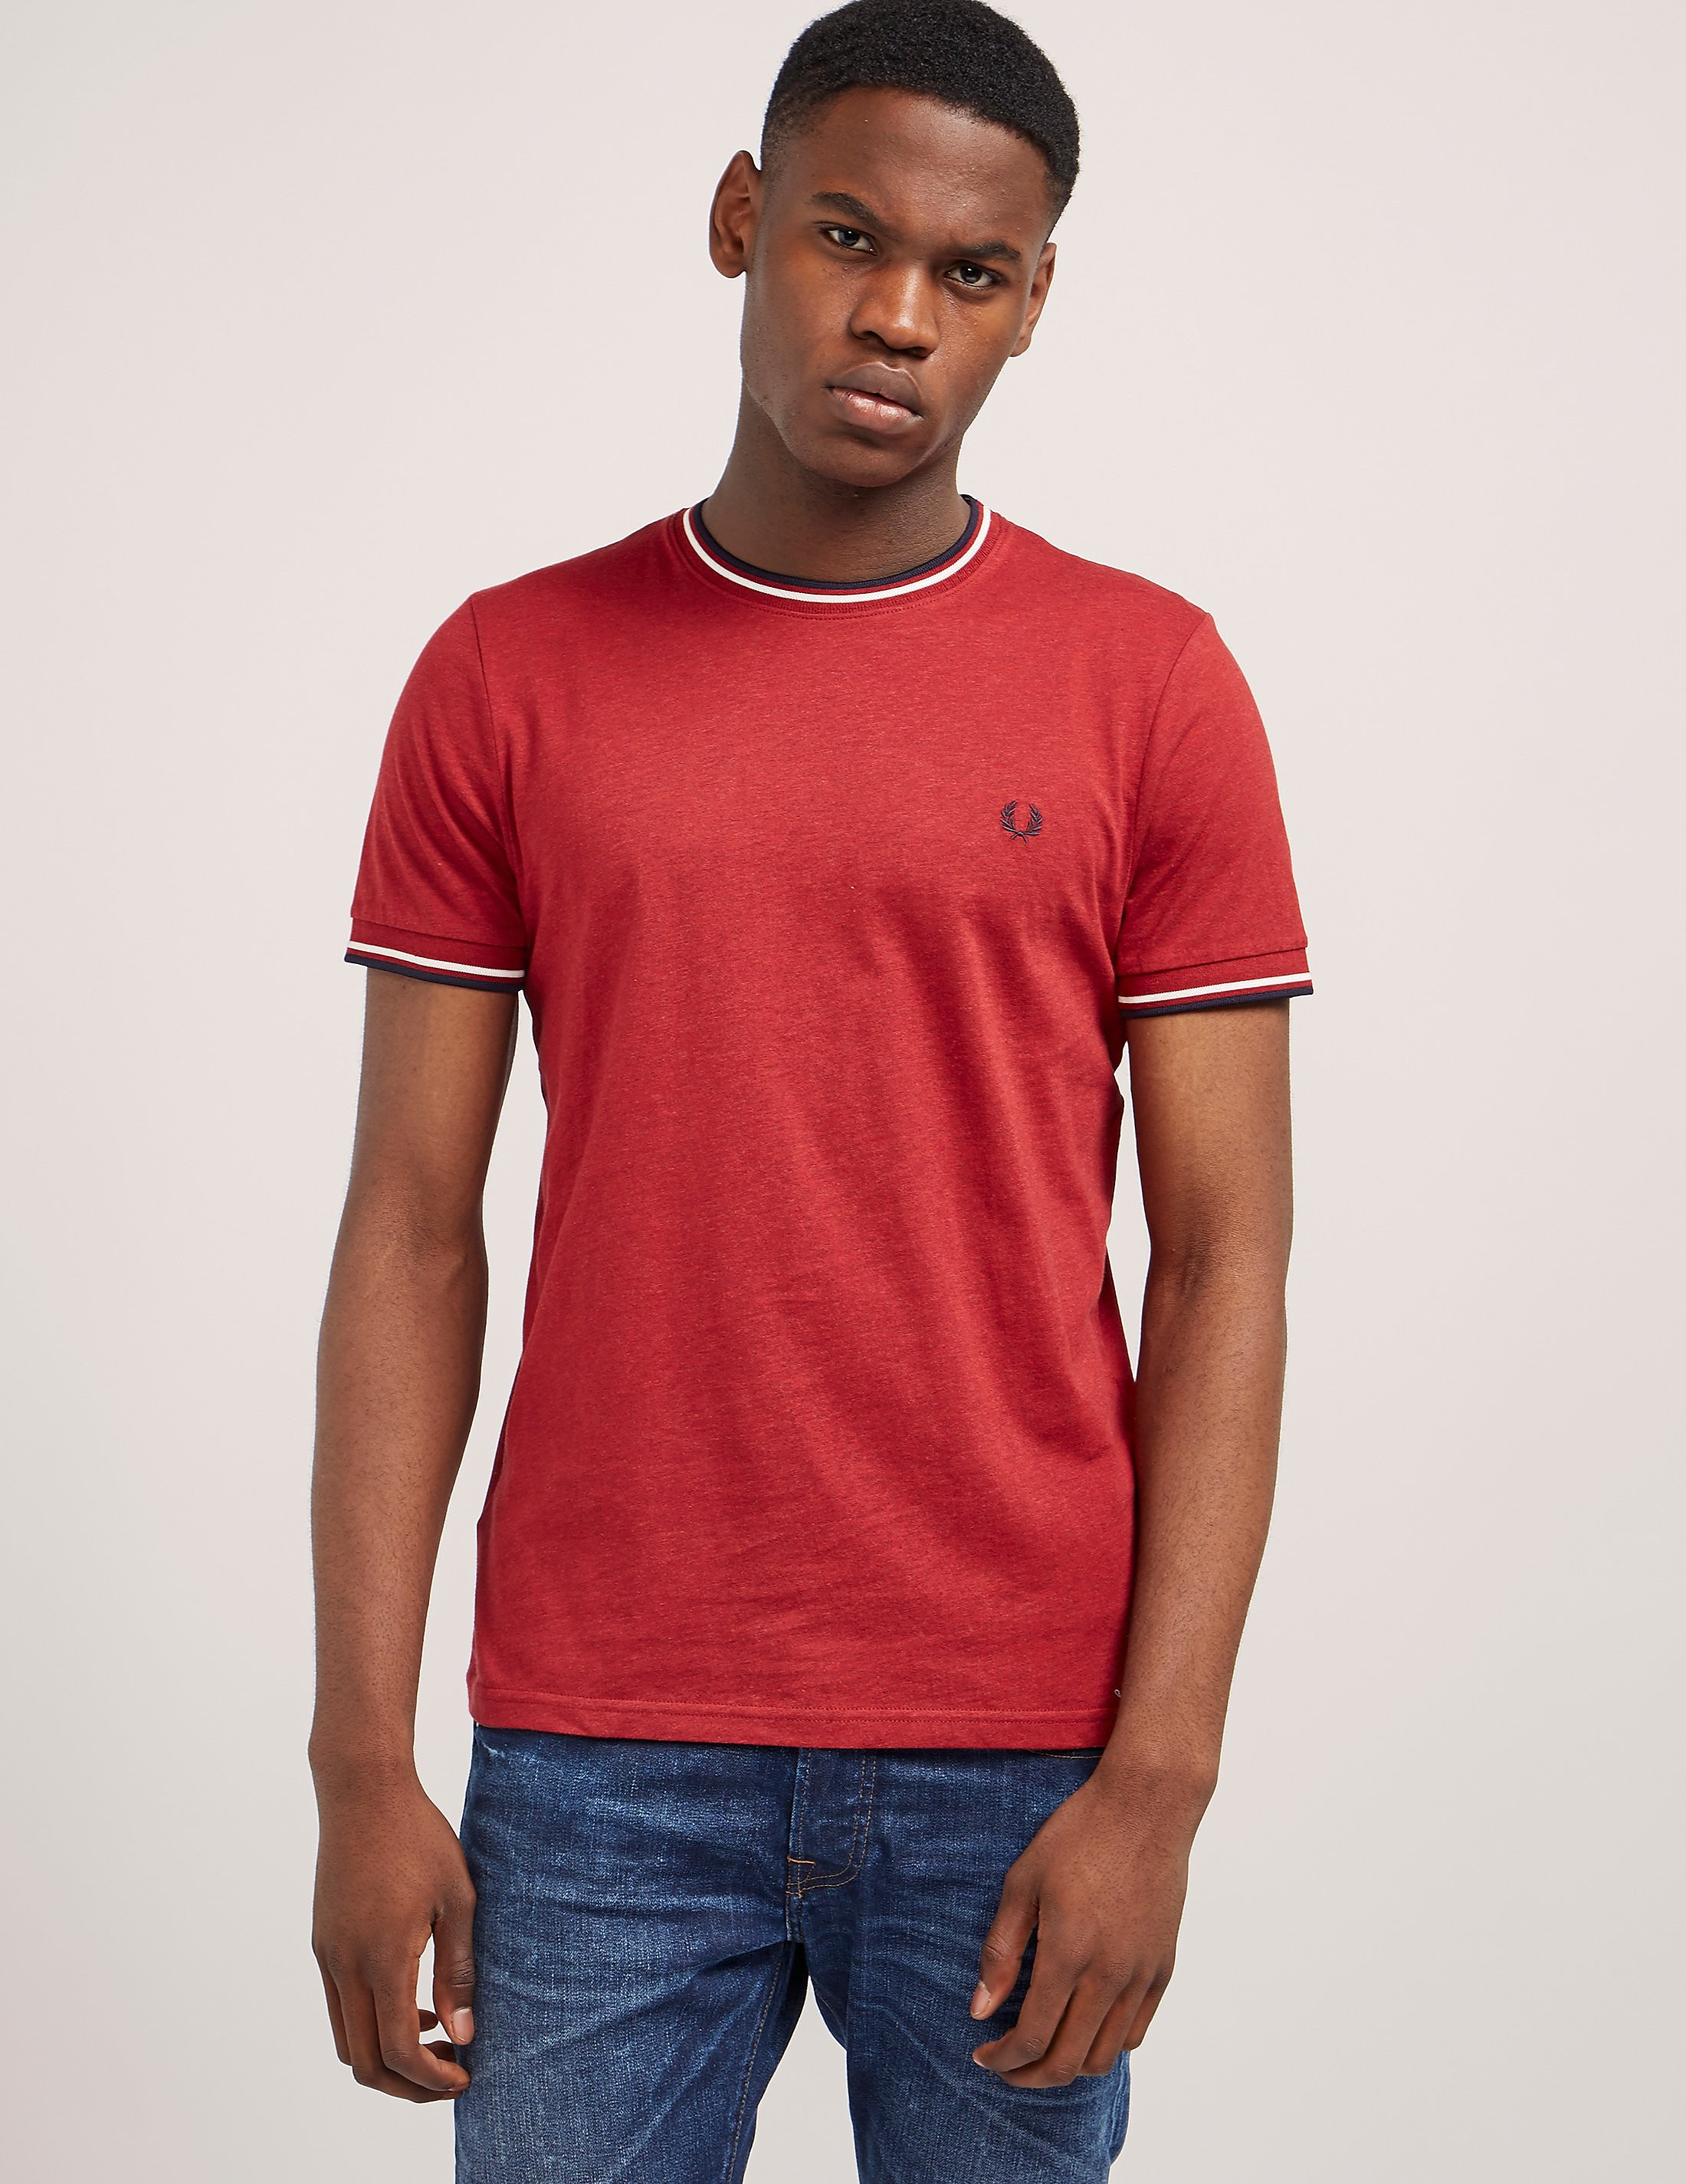 Fred Perry Tip Ringer Short Sleeve T-Shirt